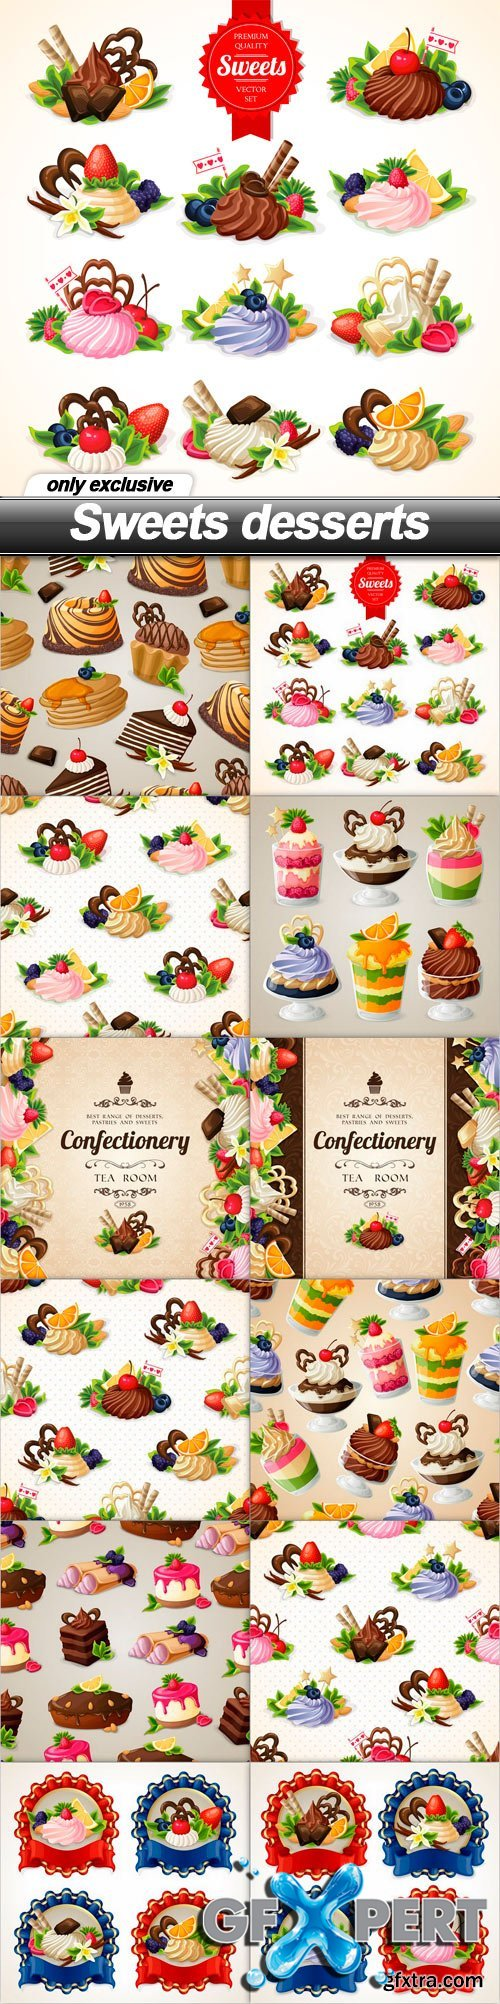 Sweets desserts - 12 EPS